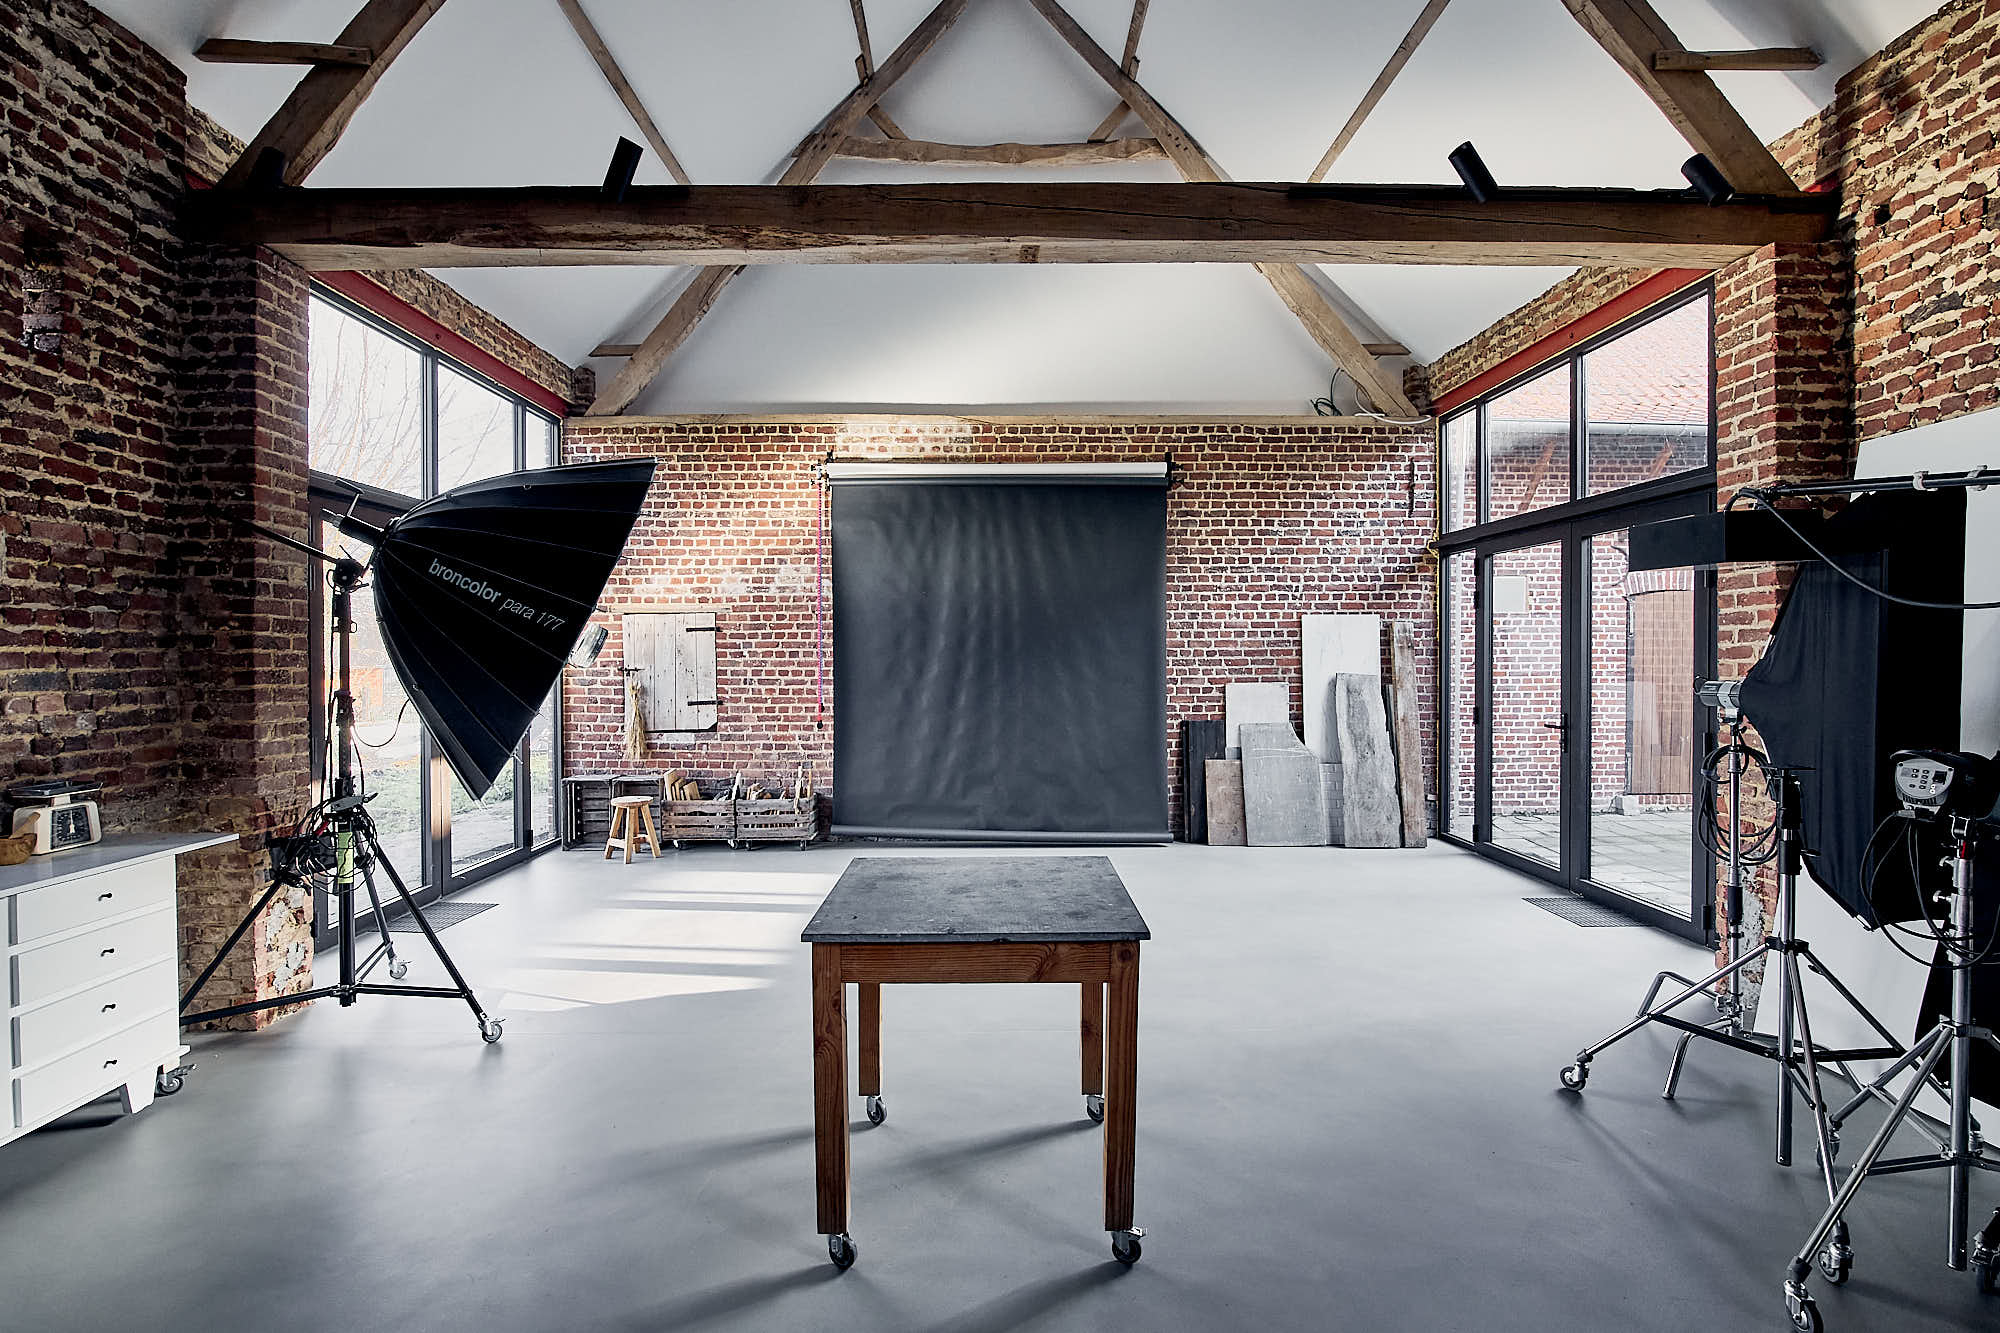 natural light photosgraphy studio with broncolor flash system and paper roll backdrops